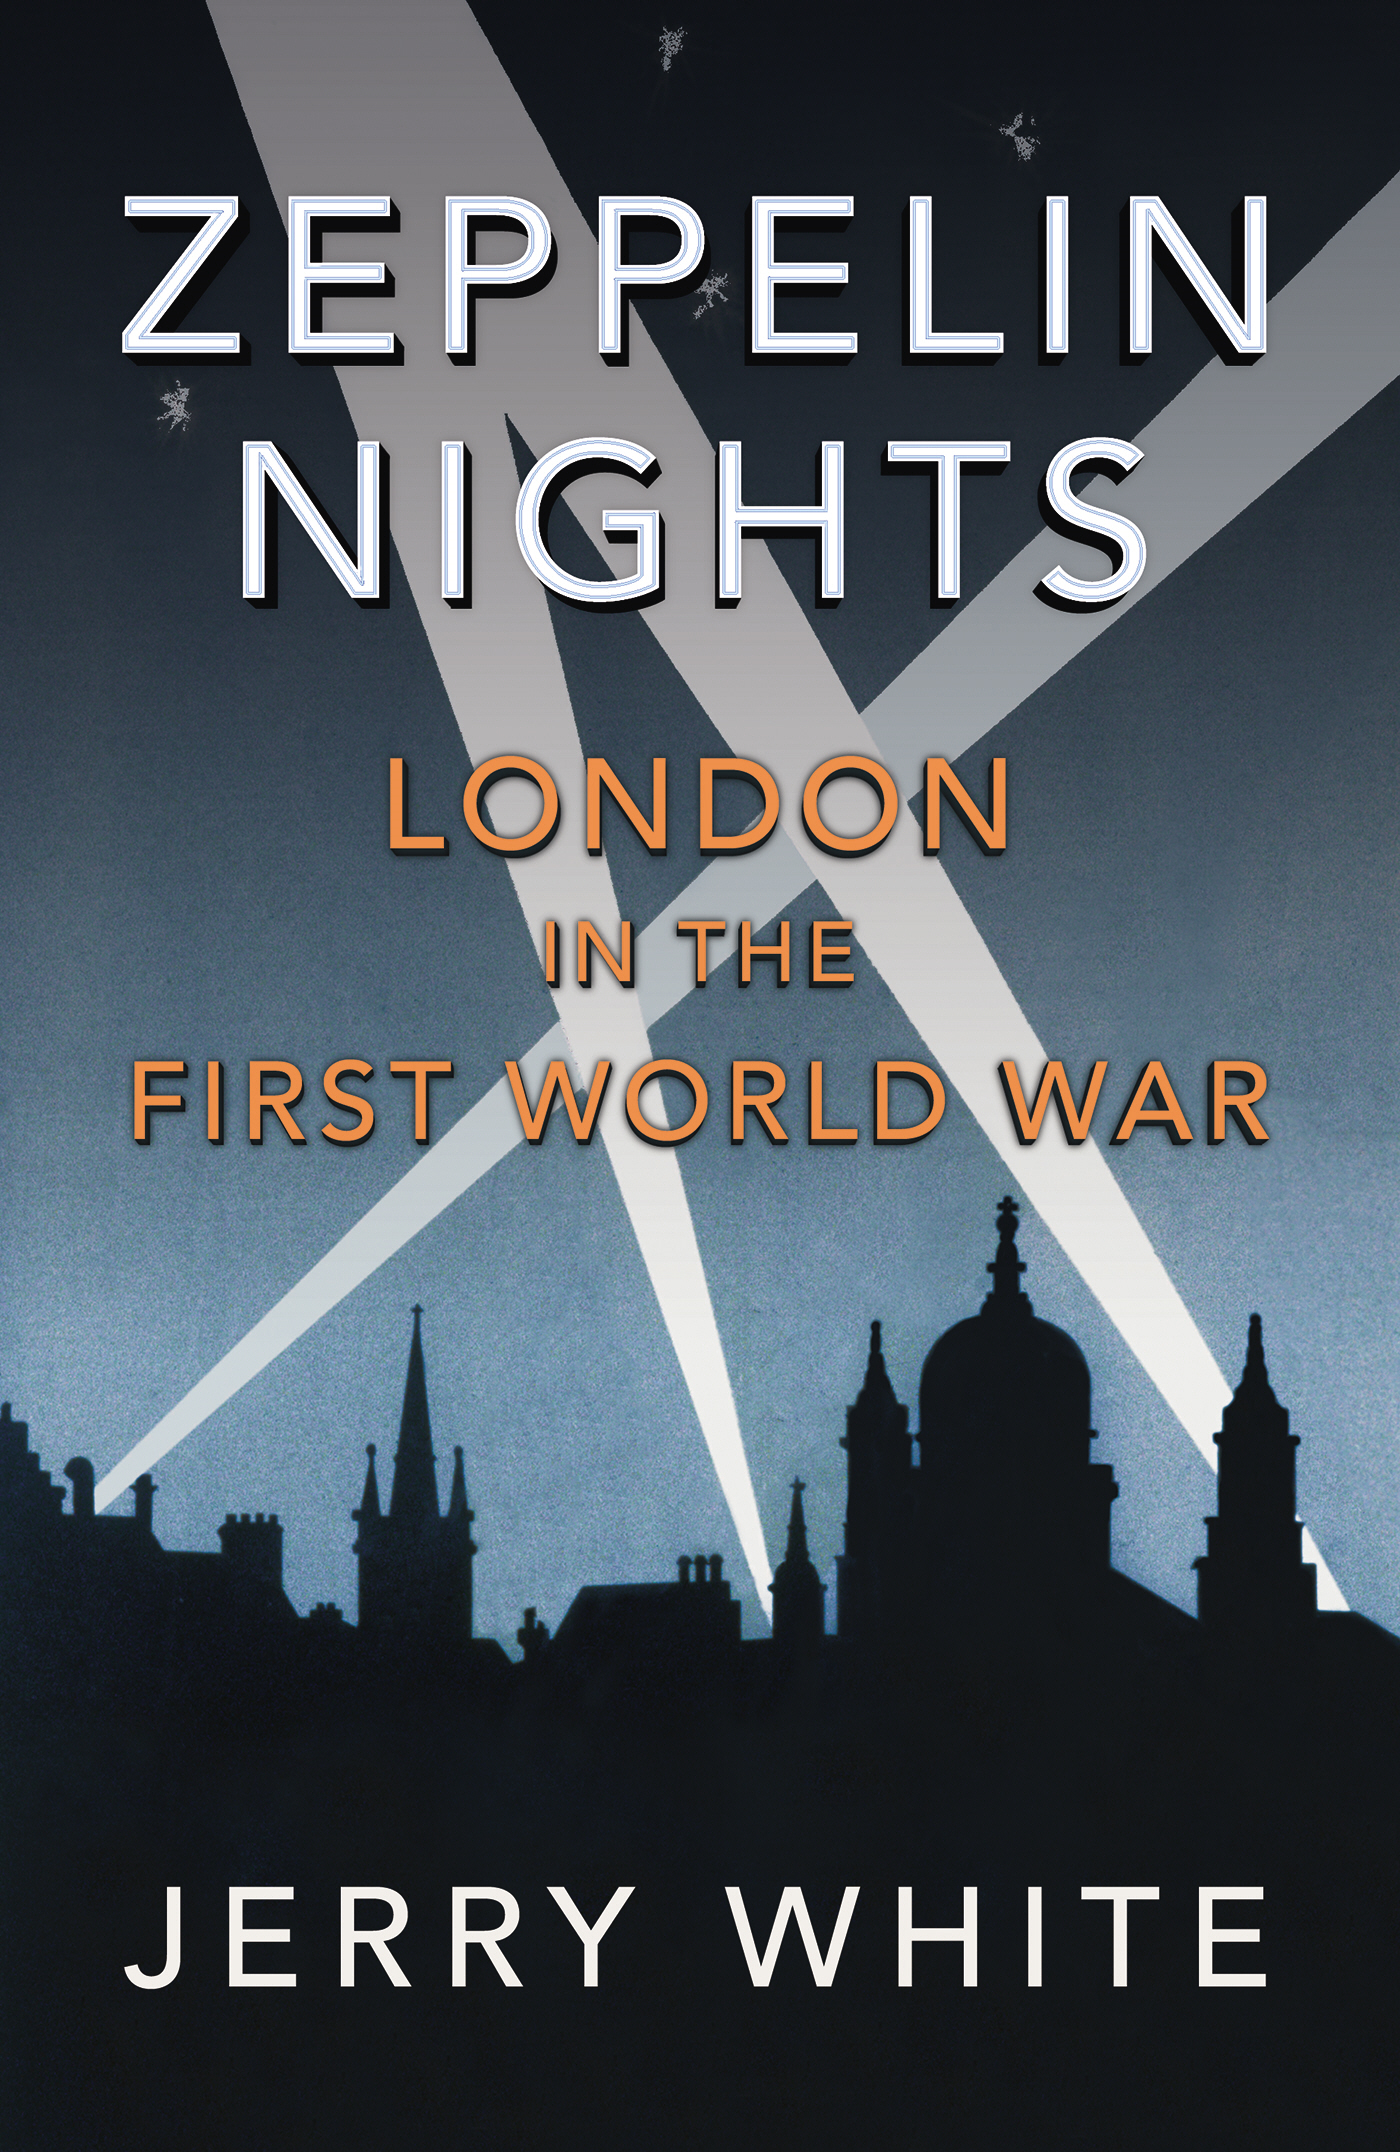 Zeppelin Nights London in the First World War